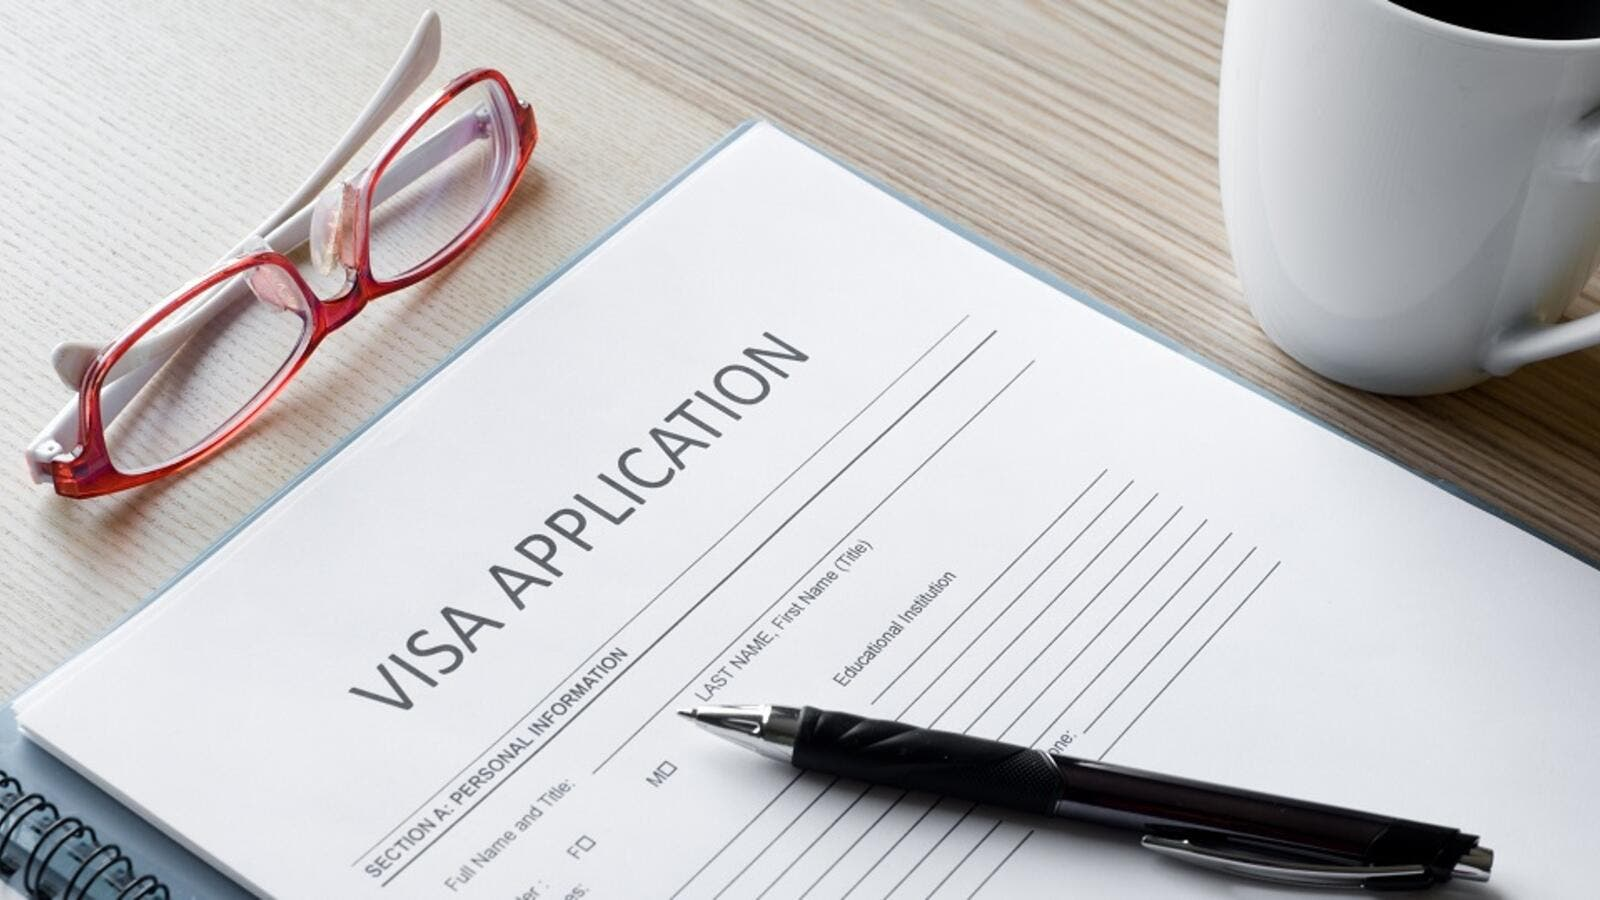 UAE Starts Receiving Applications for 10-Year Visa. (Shutterstock)